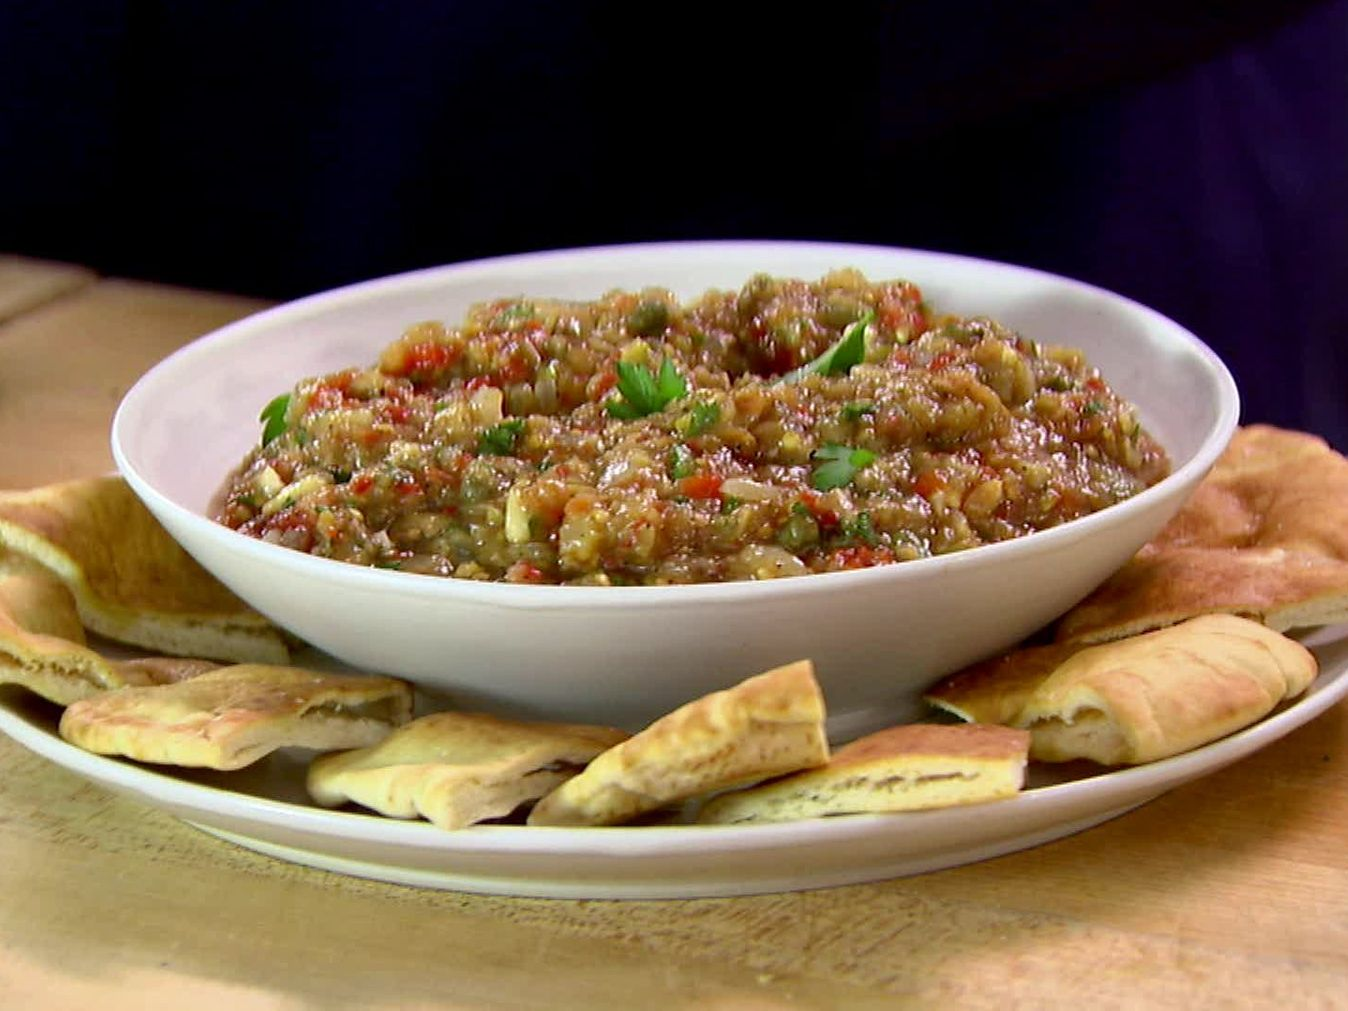 Roasted eggplant caponata recipe ina garten salts and Barefoot contessa recipes